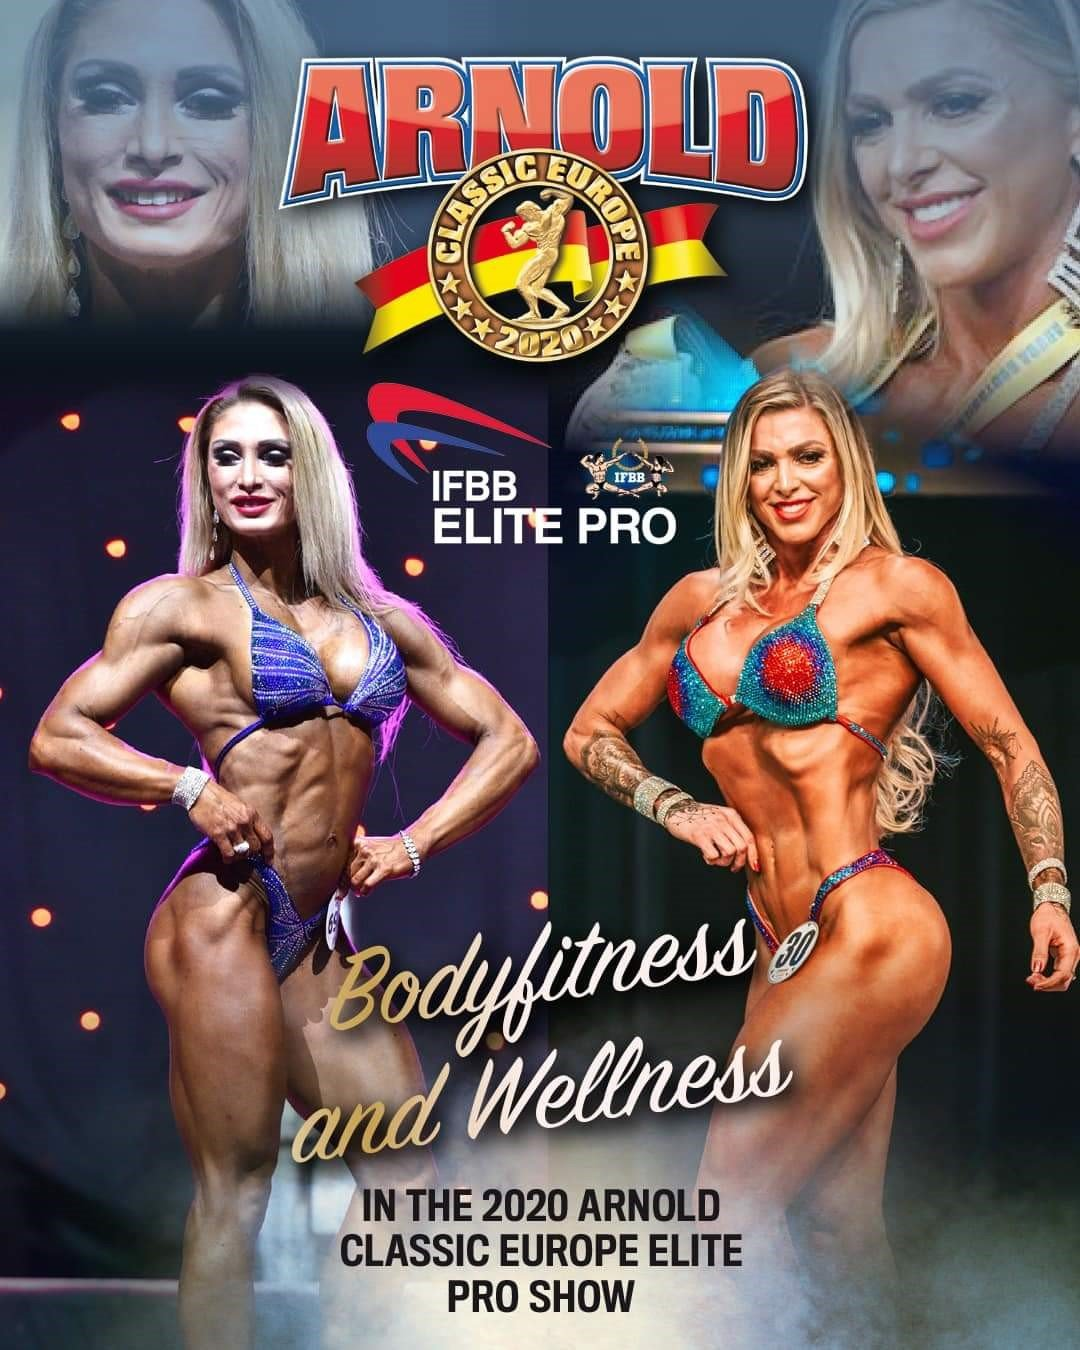 fitness-and-wellness-2020-Arnold-Classic-Europe